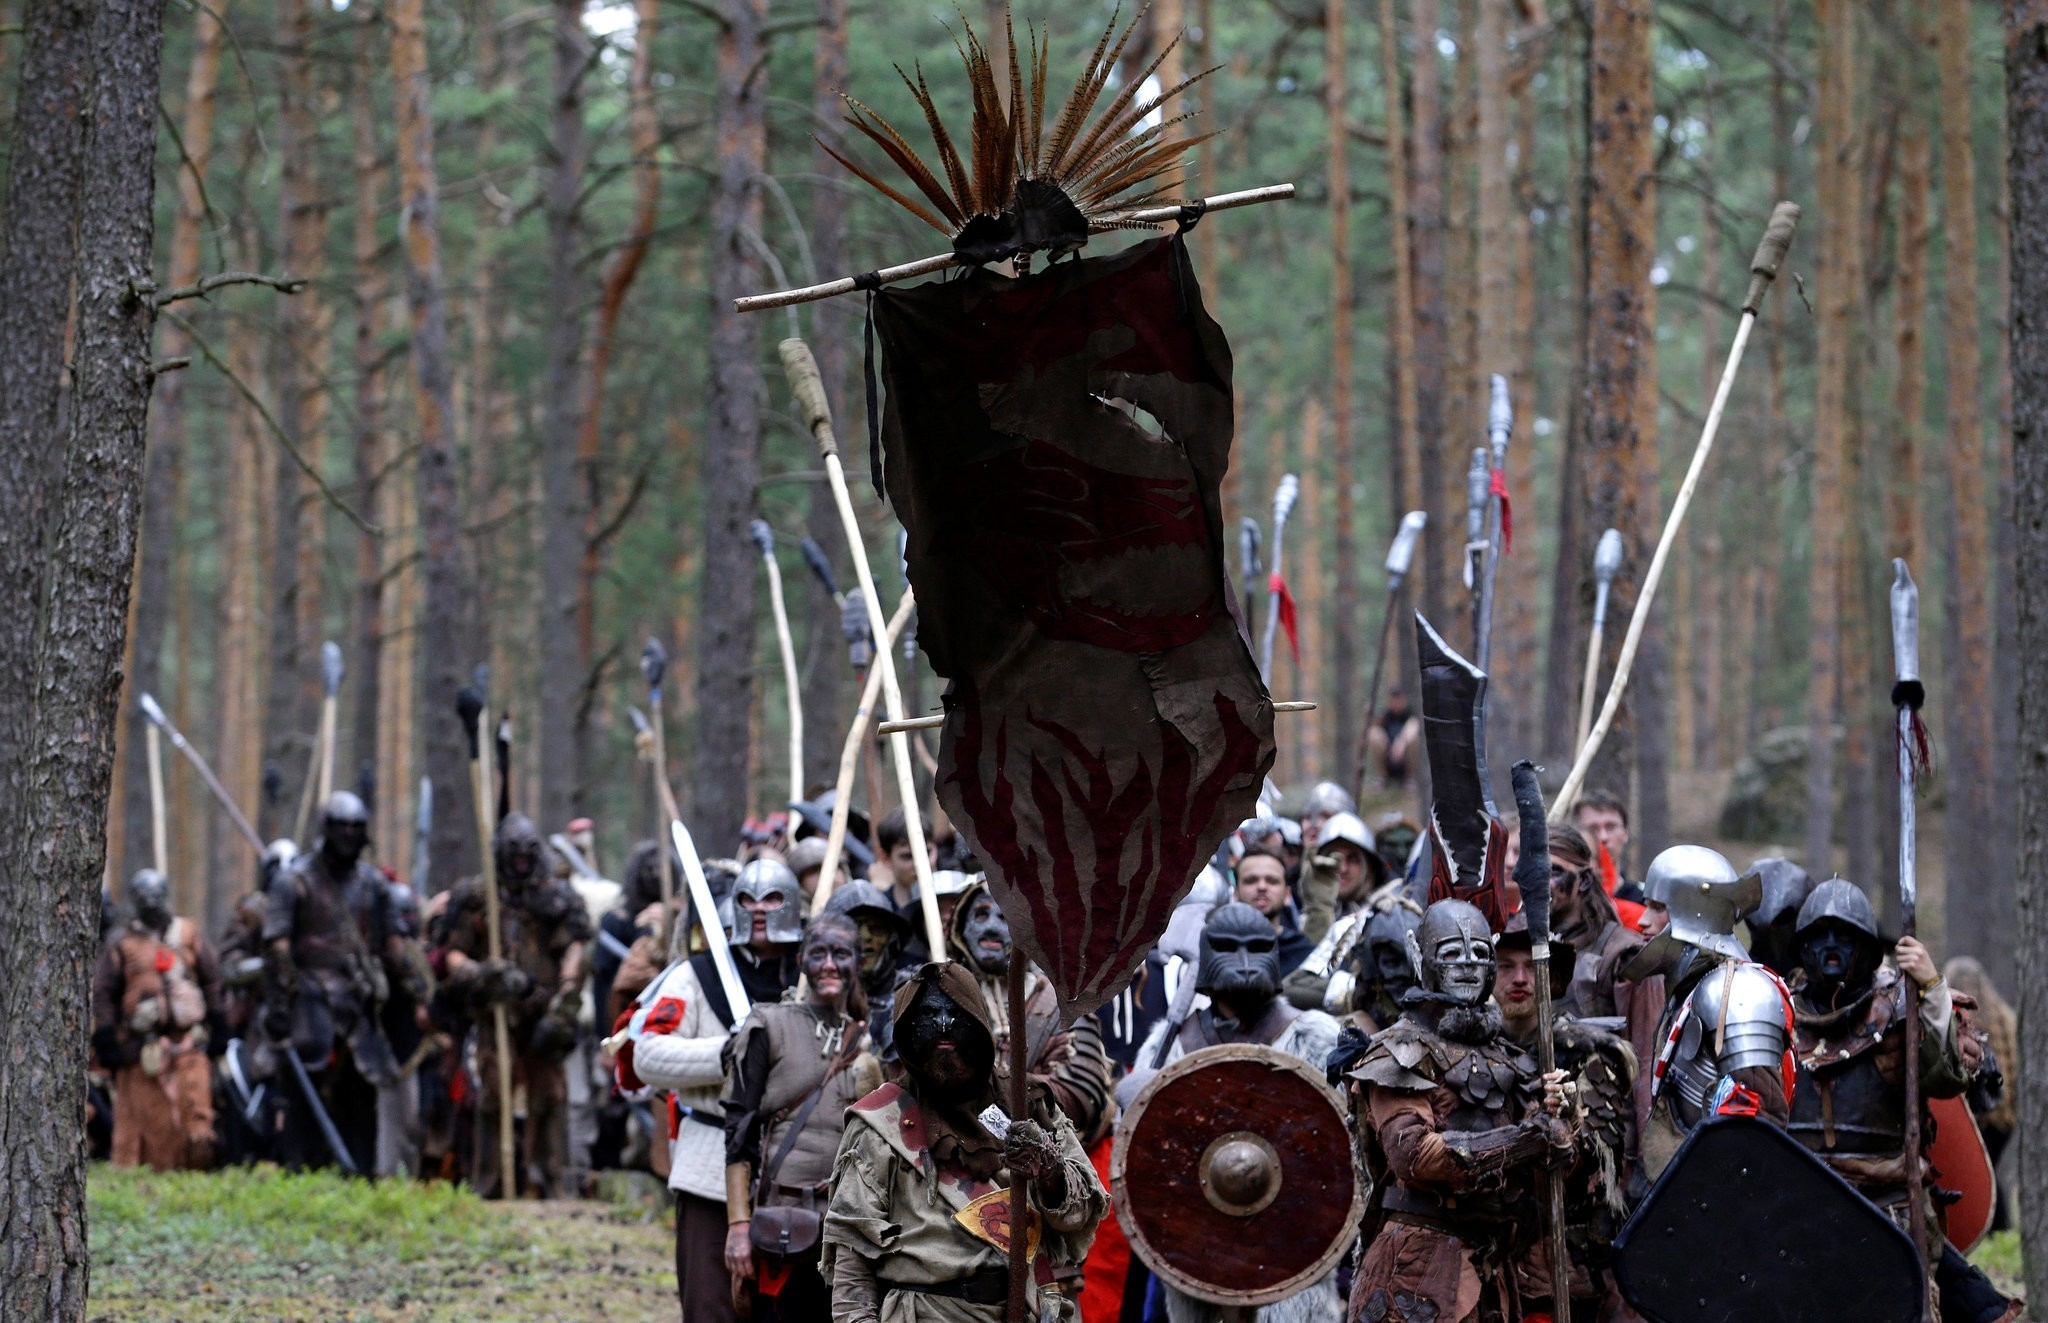 Fans of ,The Hobbit, re-enact the ,Battle of Five Armies, in a forest near the town of Doksy, Czech Republic, June 16, 2018. (REUTERS Photo)